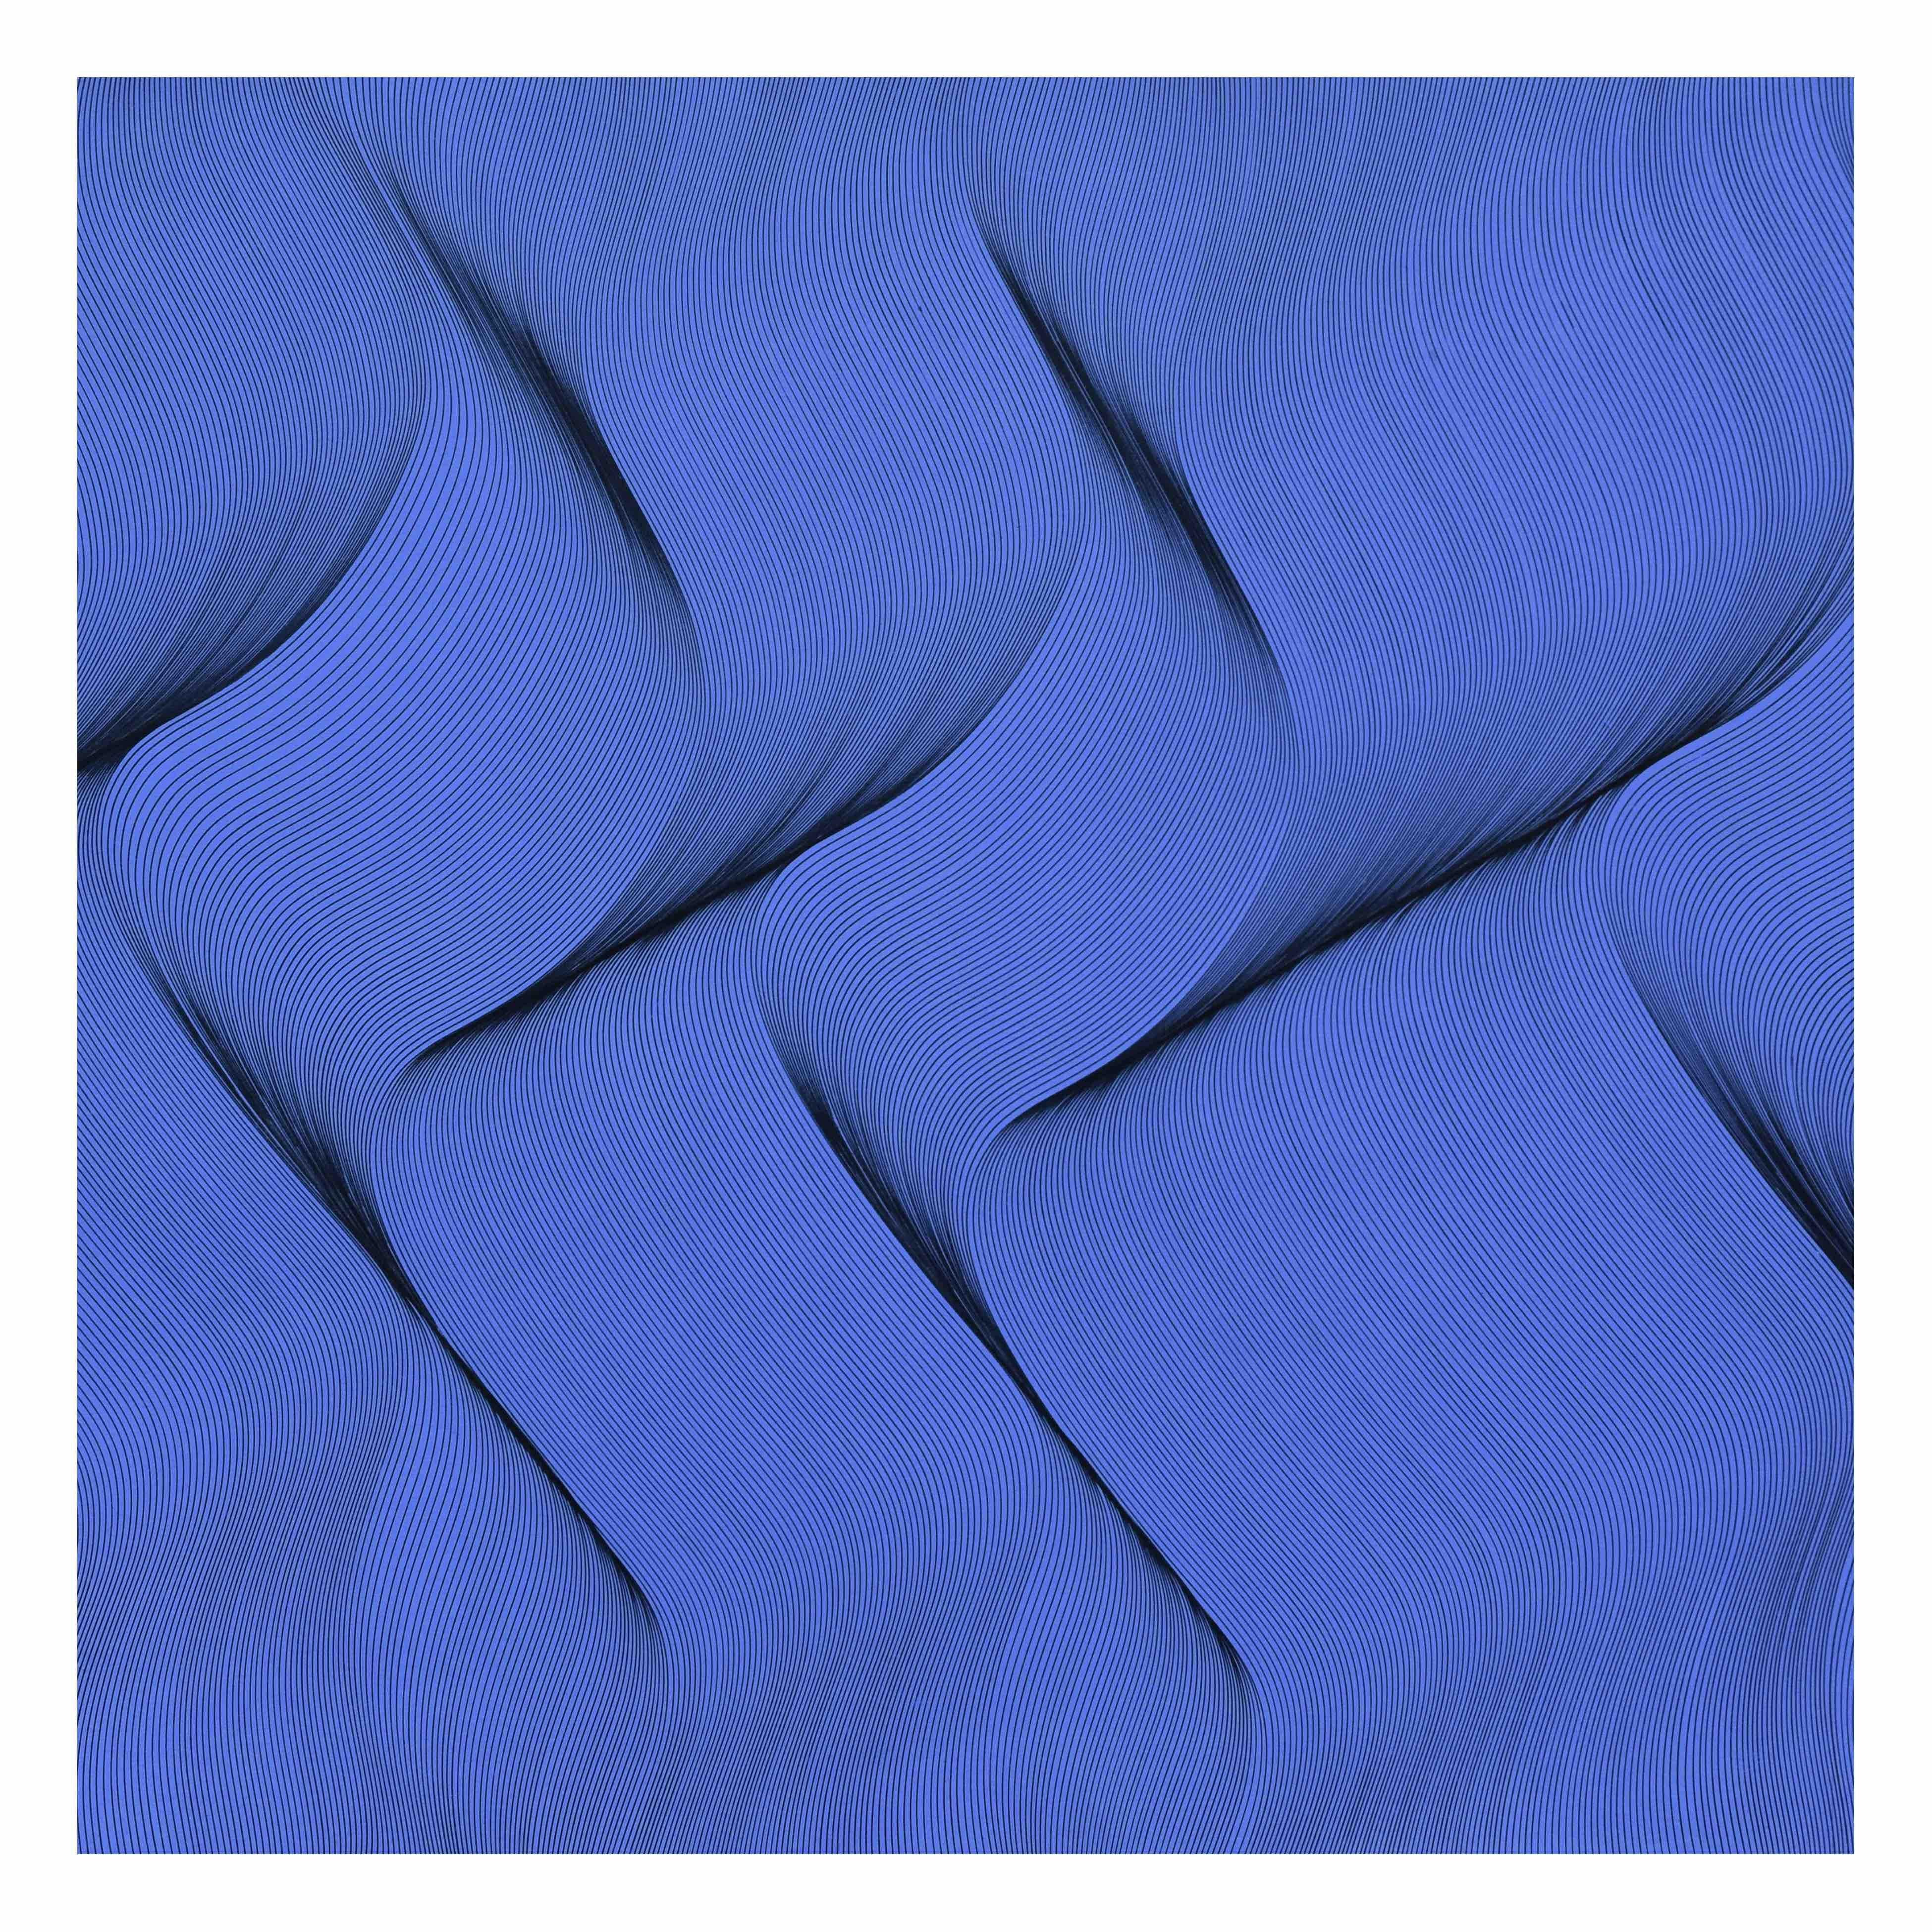 Movement in Blue - abstract painting